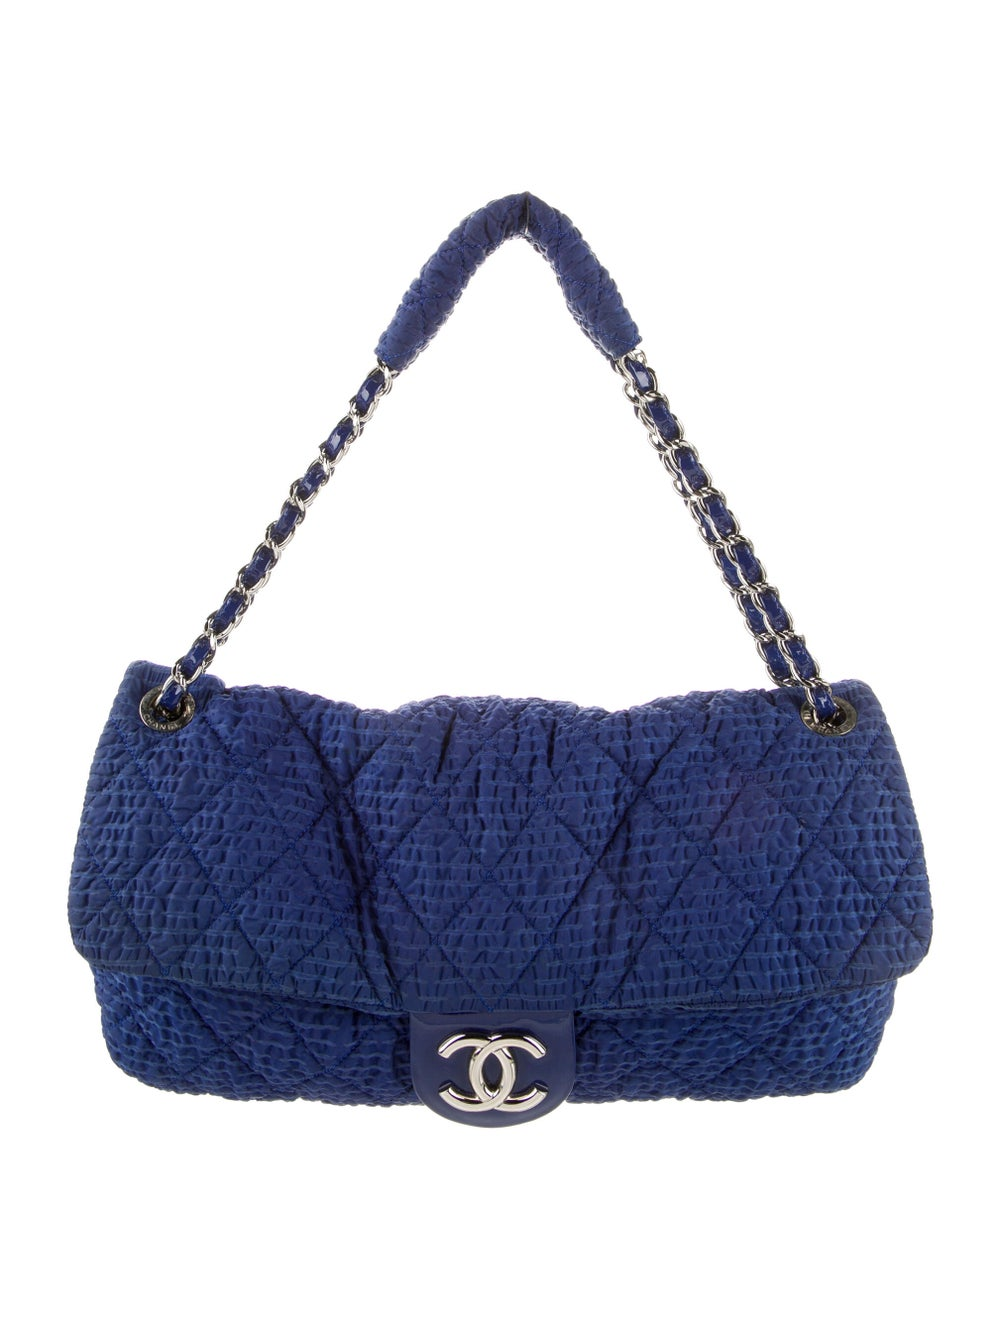 Chanel Cloquee Flap Bag Blue - image 1